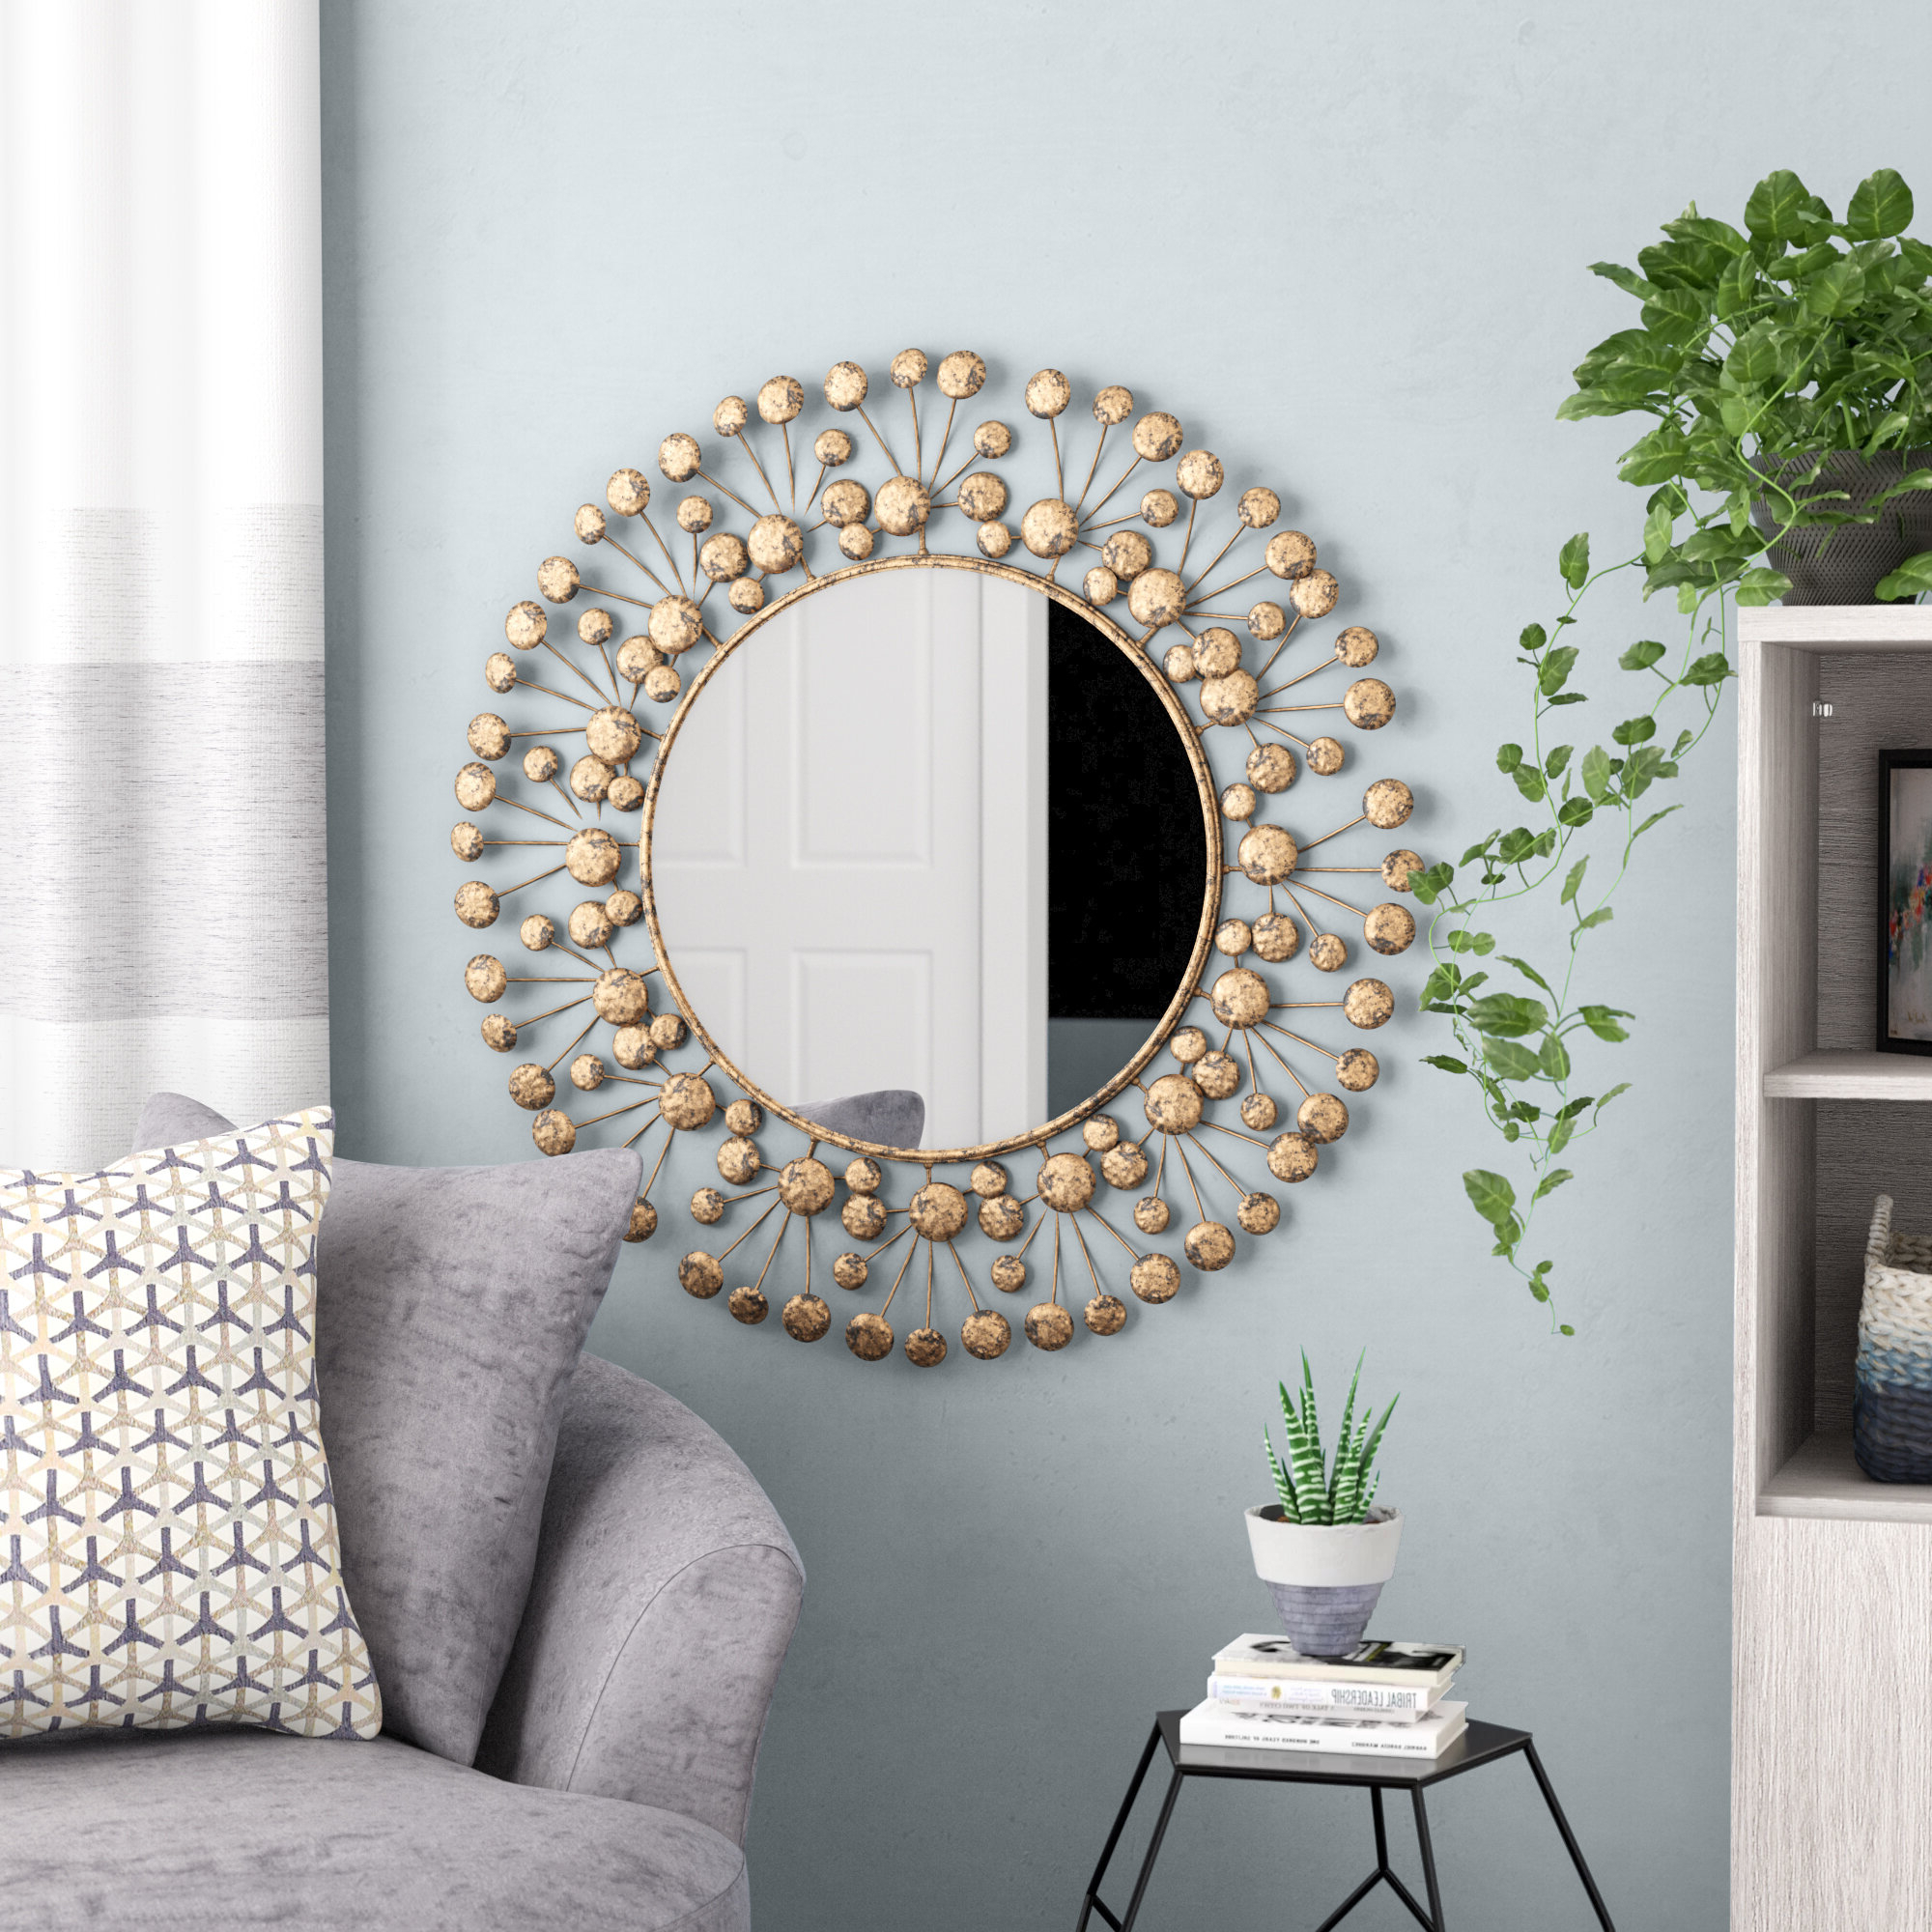 Living Room Wall Mirrors Regarding Preferred Eisenbarth Oversized Decorative Round Wall Mirror (Gallery 3 of 20)